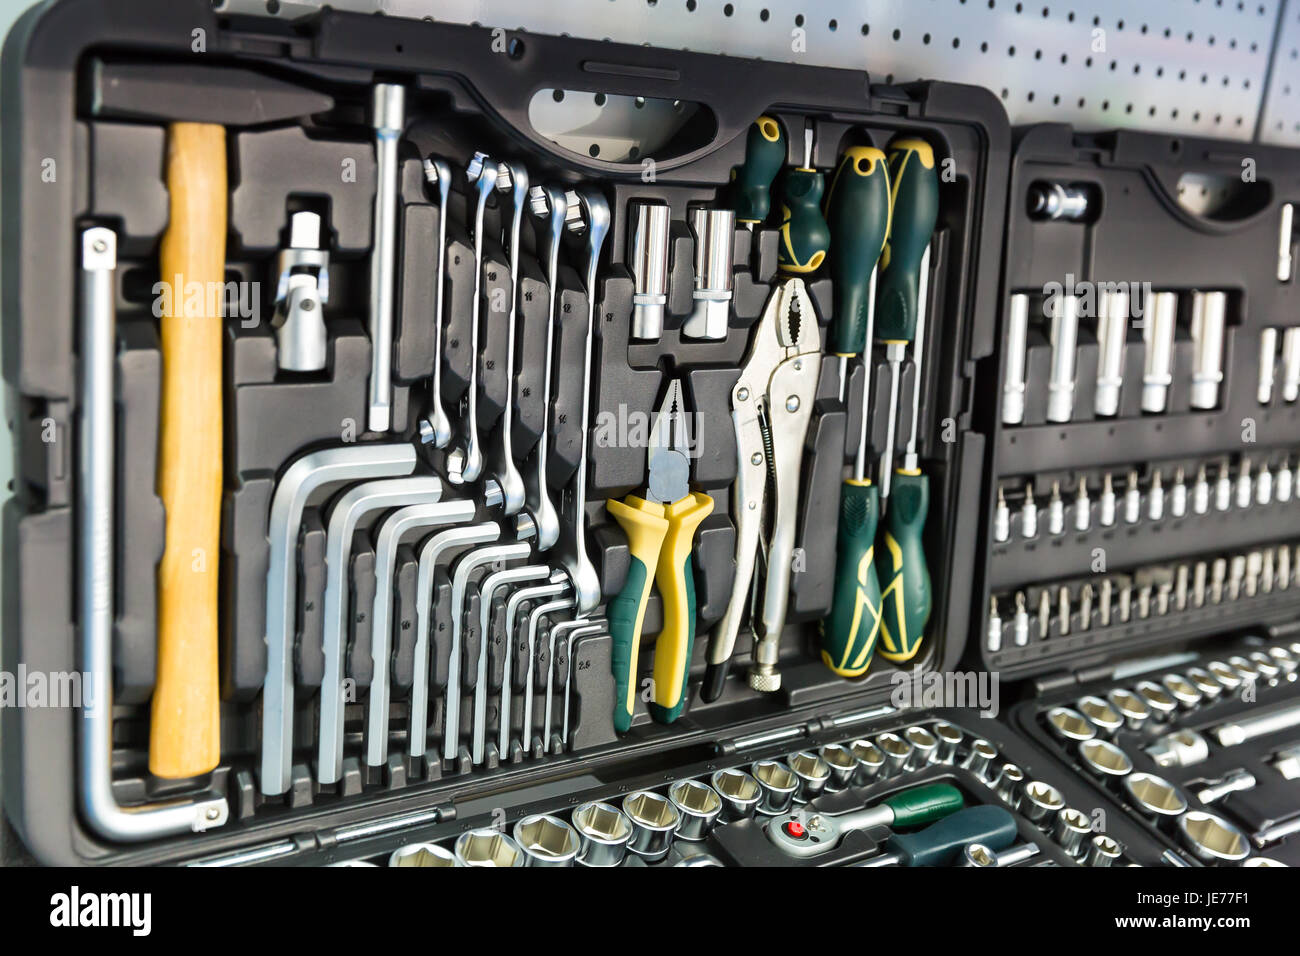 tools and equipment in the galley